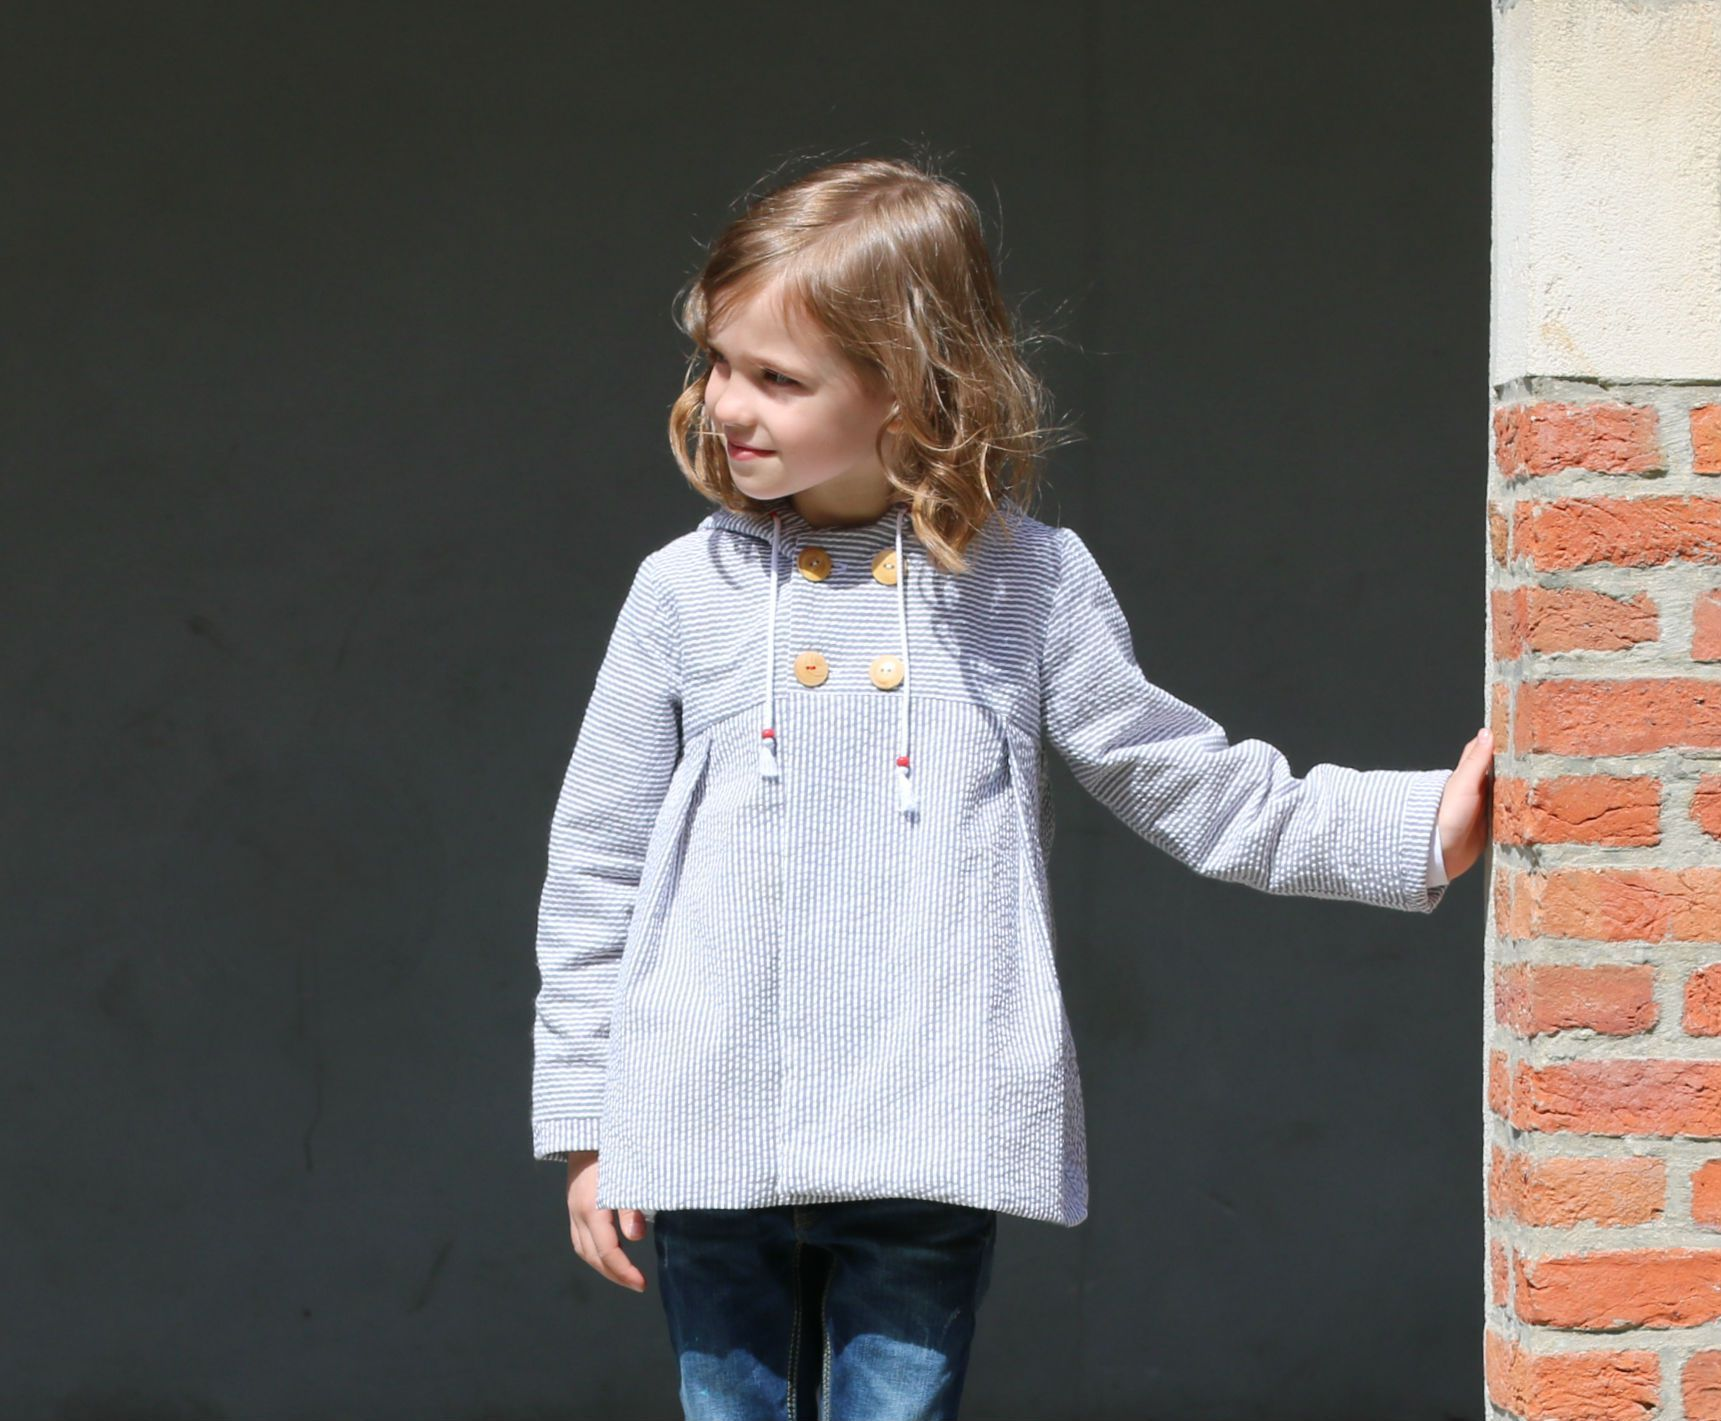 Moiano summer coat english sew kids pinterest summer coats moiano summer coat english jeuxipadfo Image collections